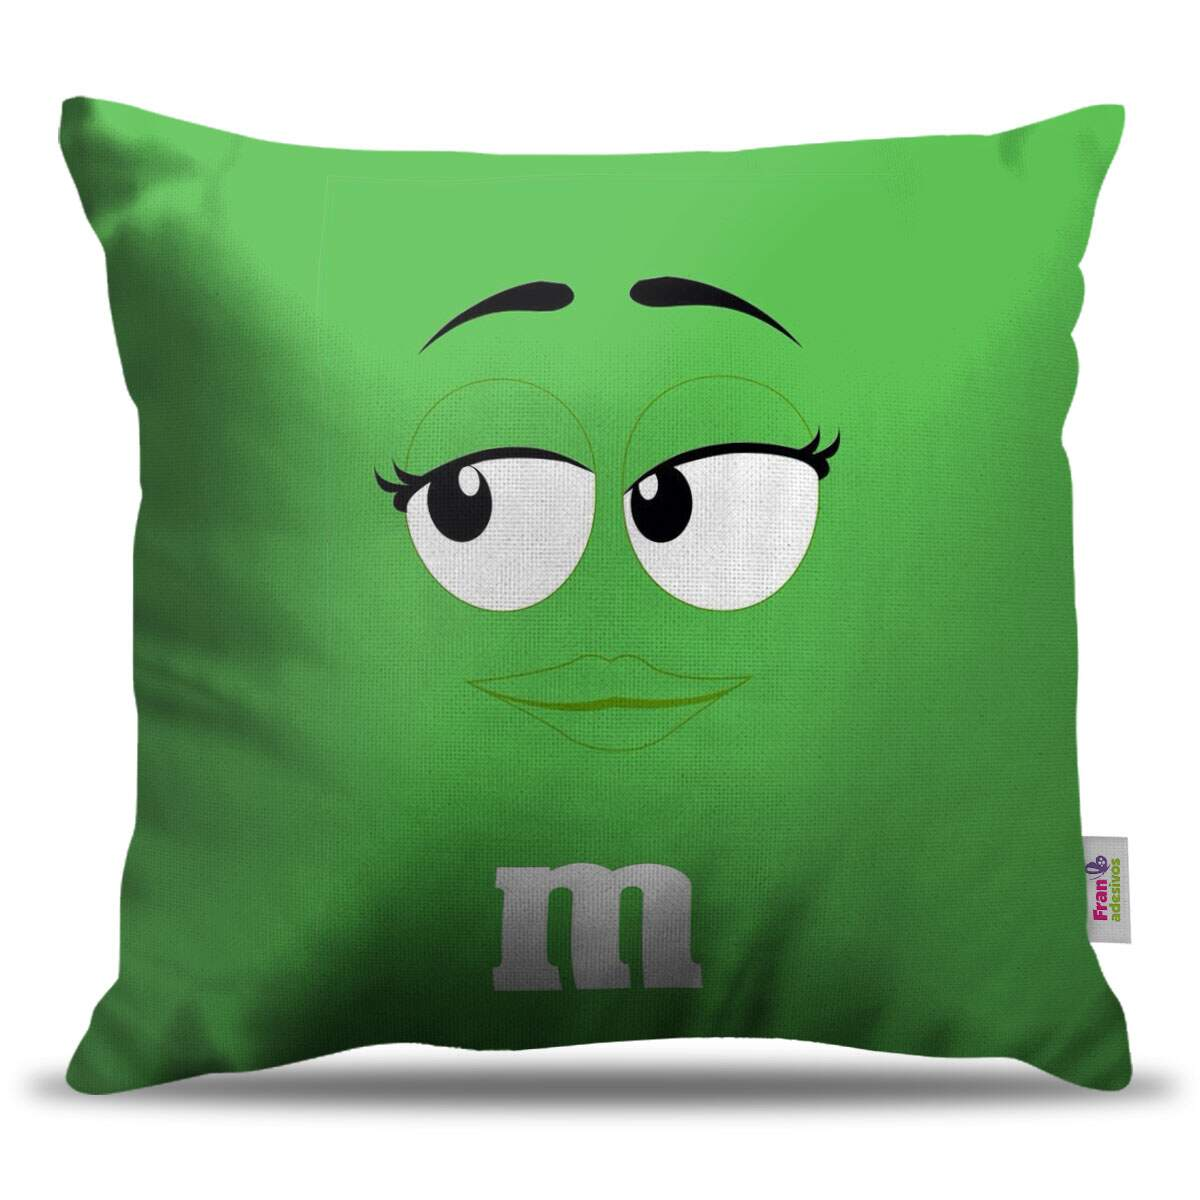 Almofada Decorativa M&M Verde 04